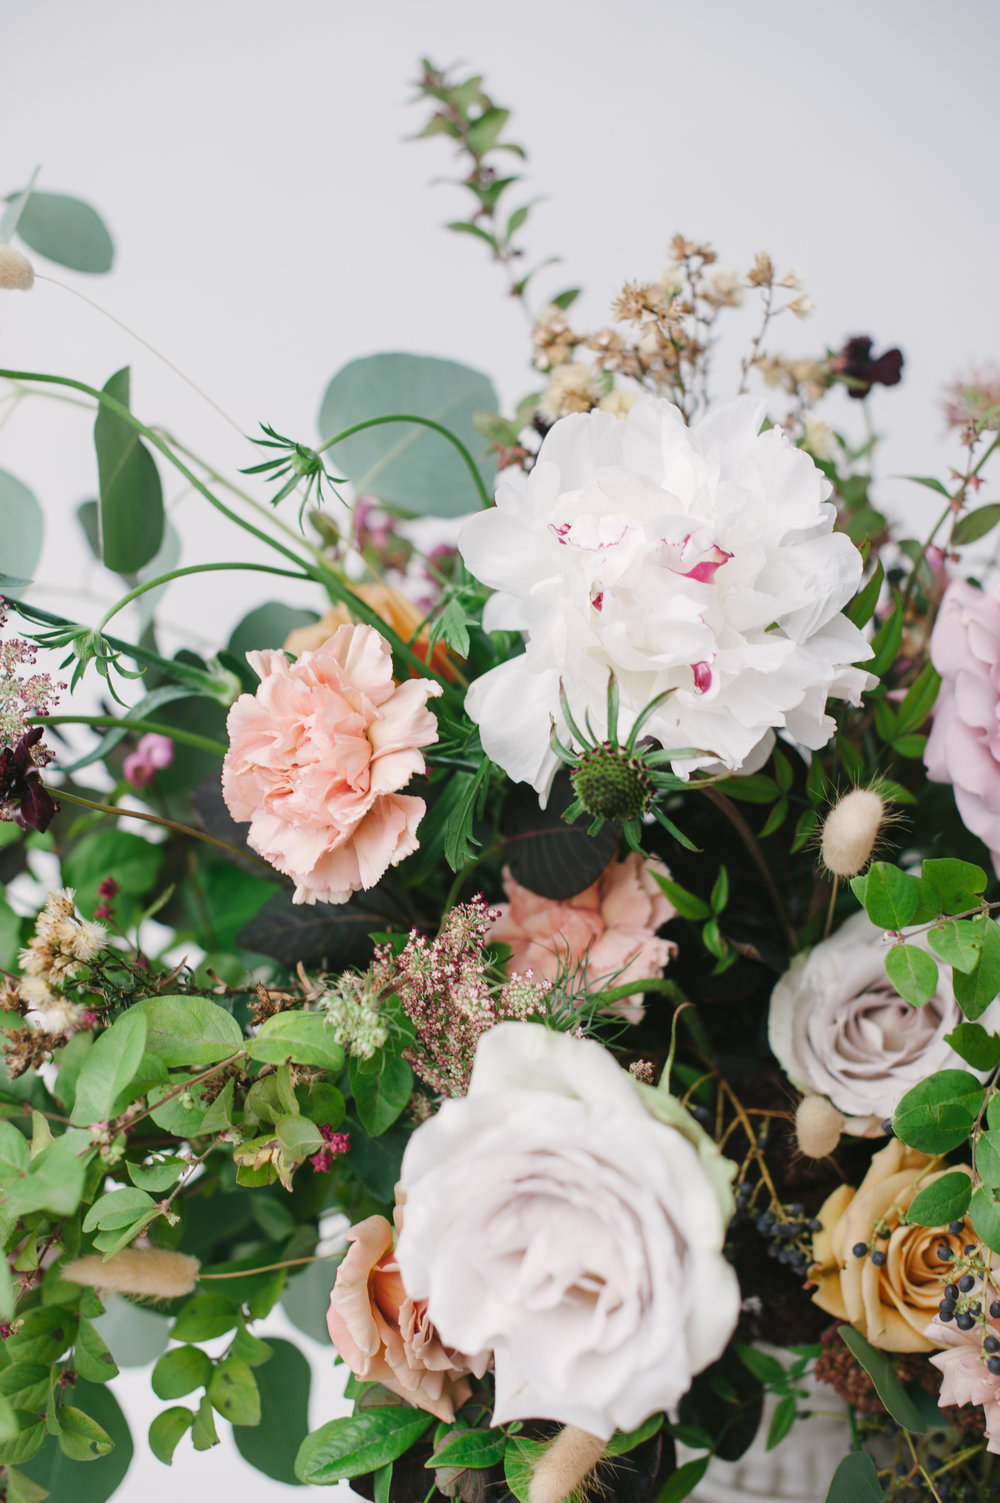 siren-floral-co-plenty-of-petals-romantik-floral-centerpiece-workshop-8.jpg